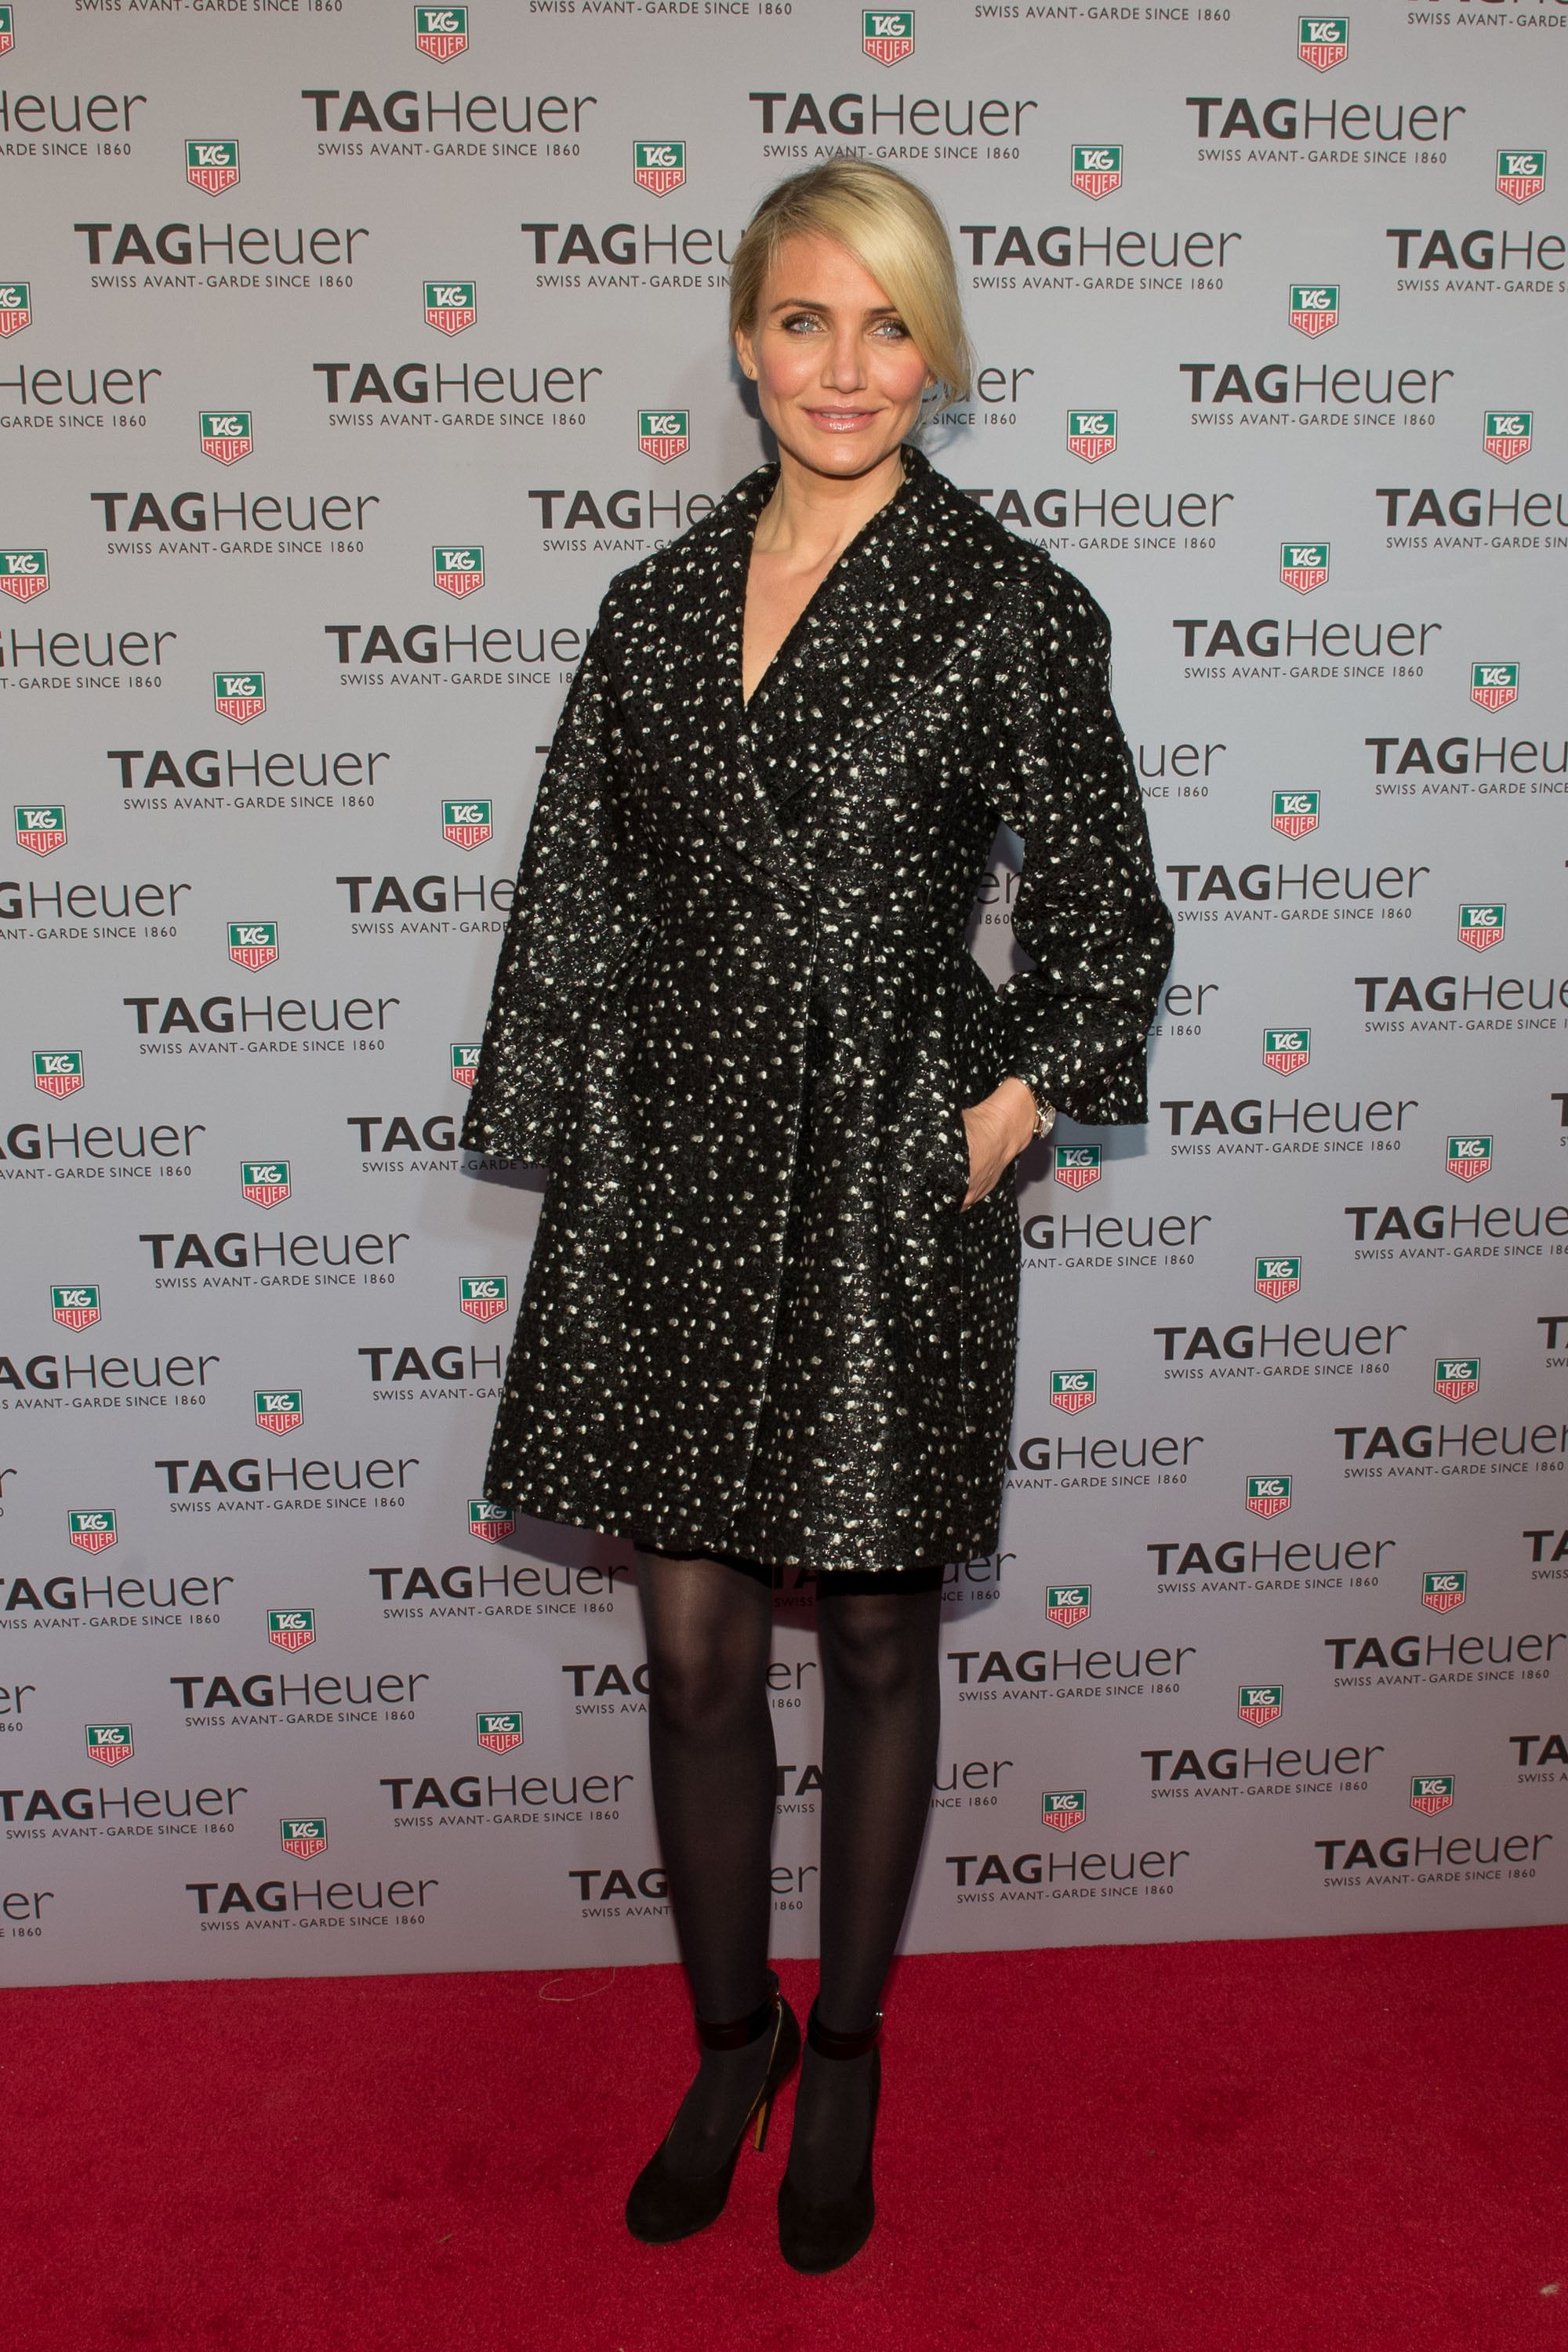 Cameron Diaz at the Tag Heuer Flagship Opening